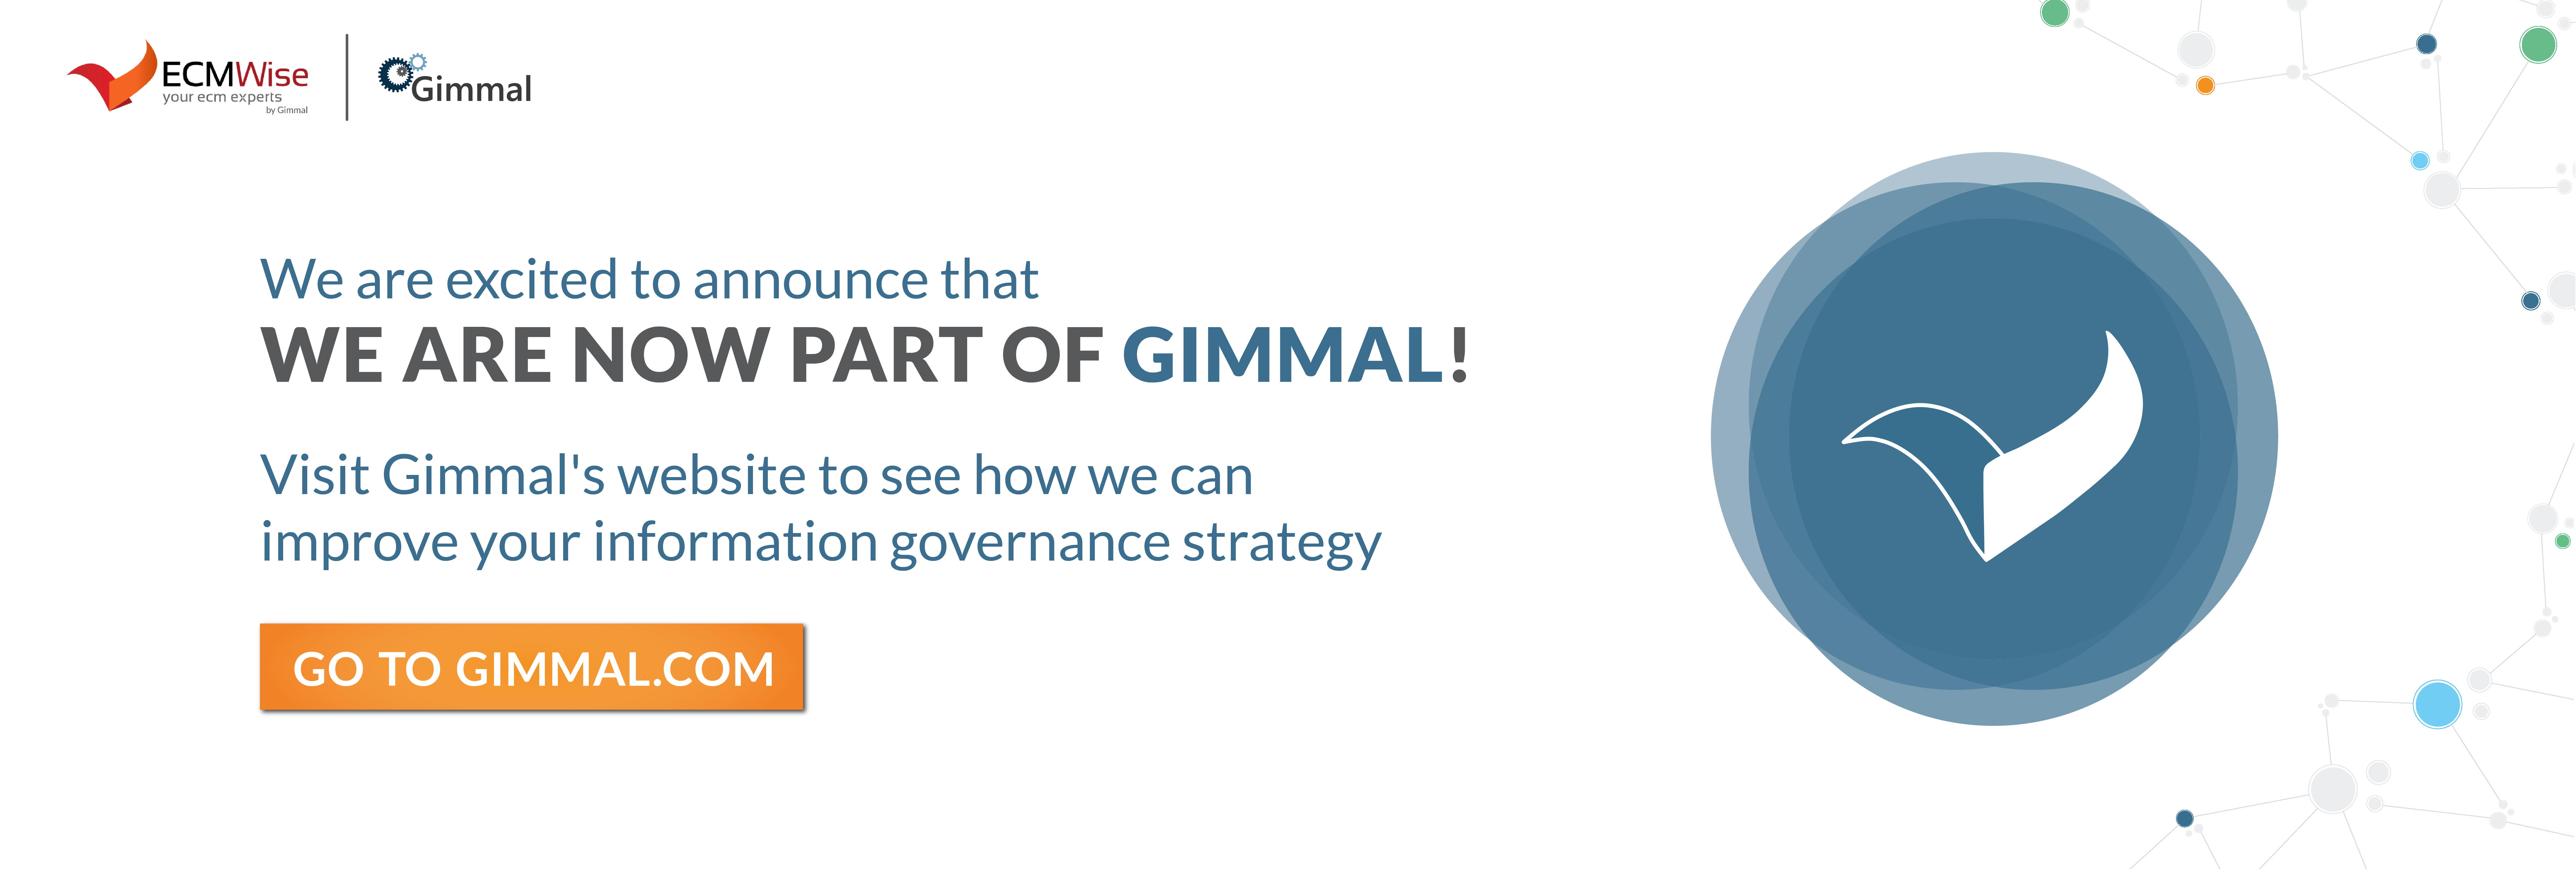 ECM Wise is now a part of Gimmal